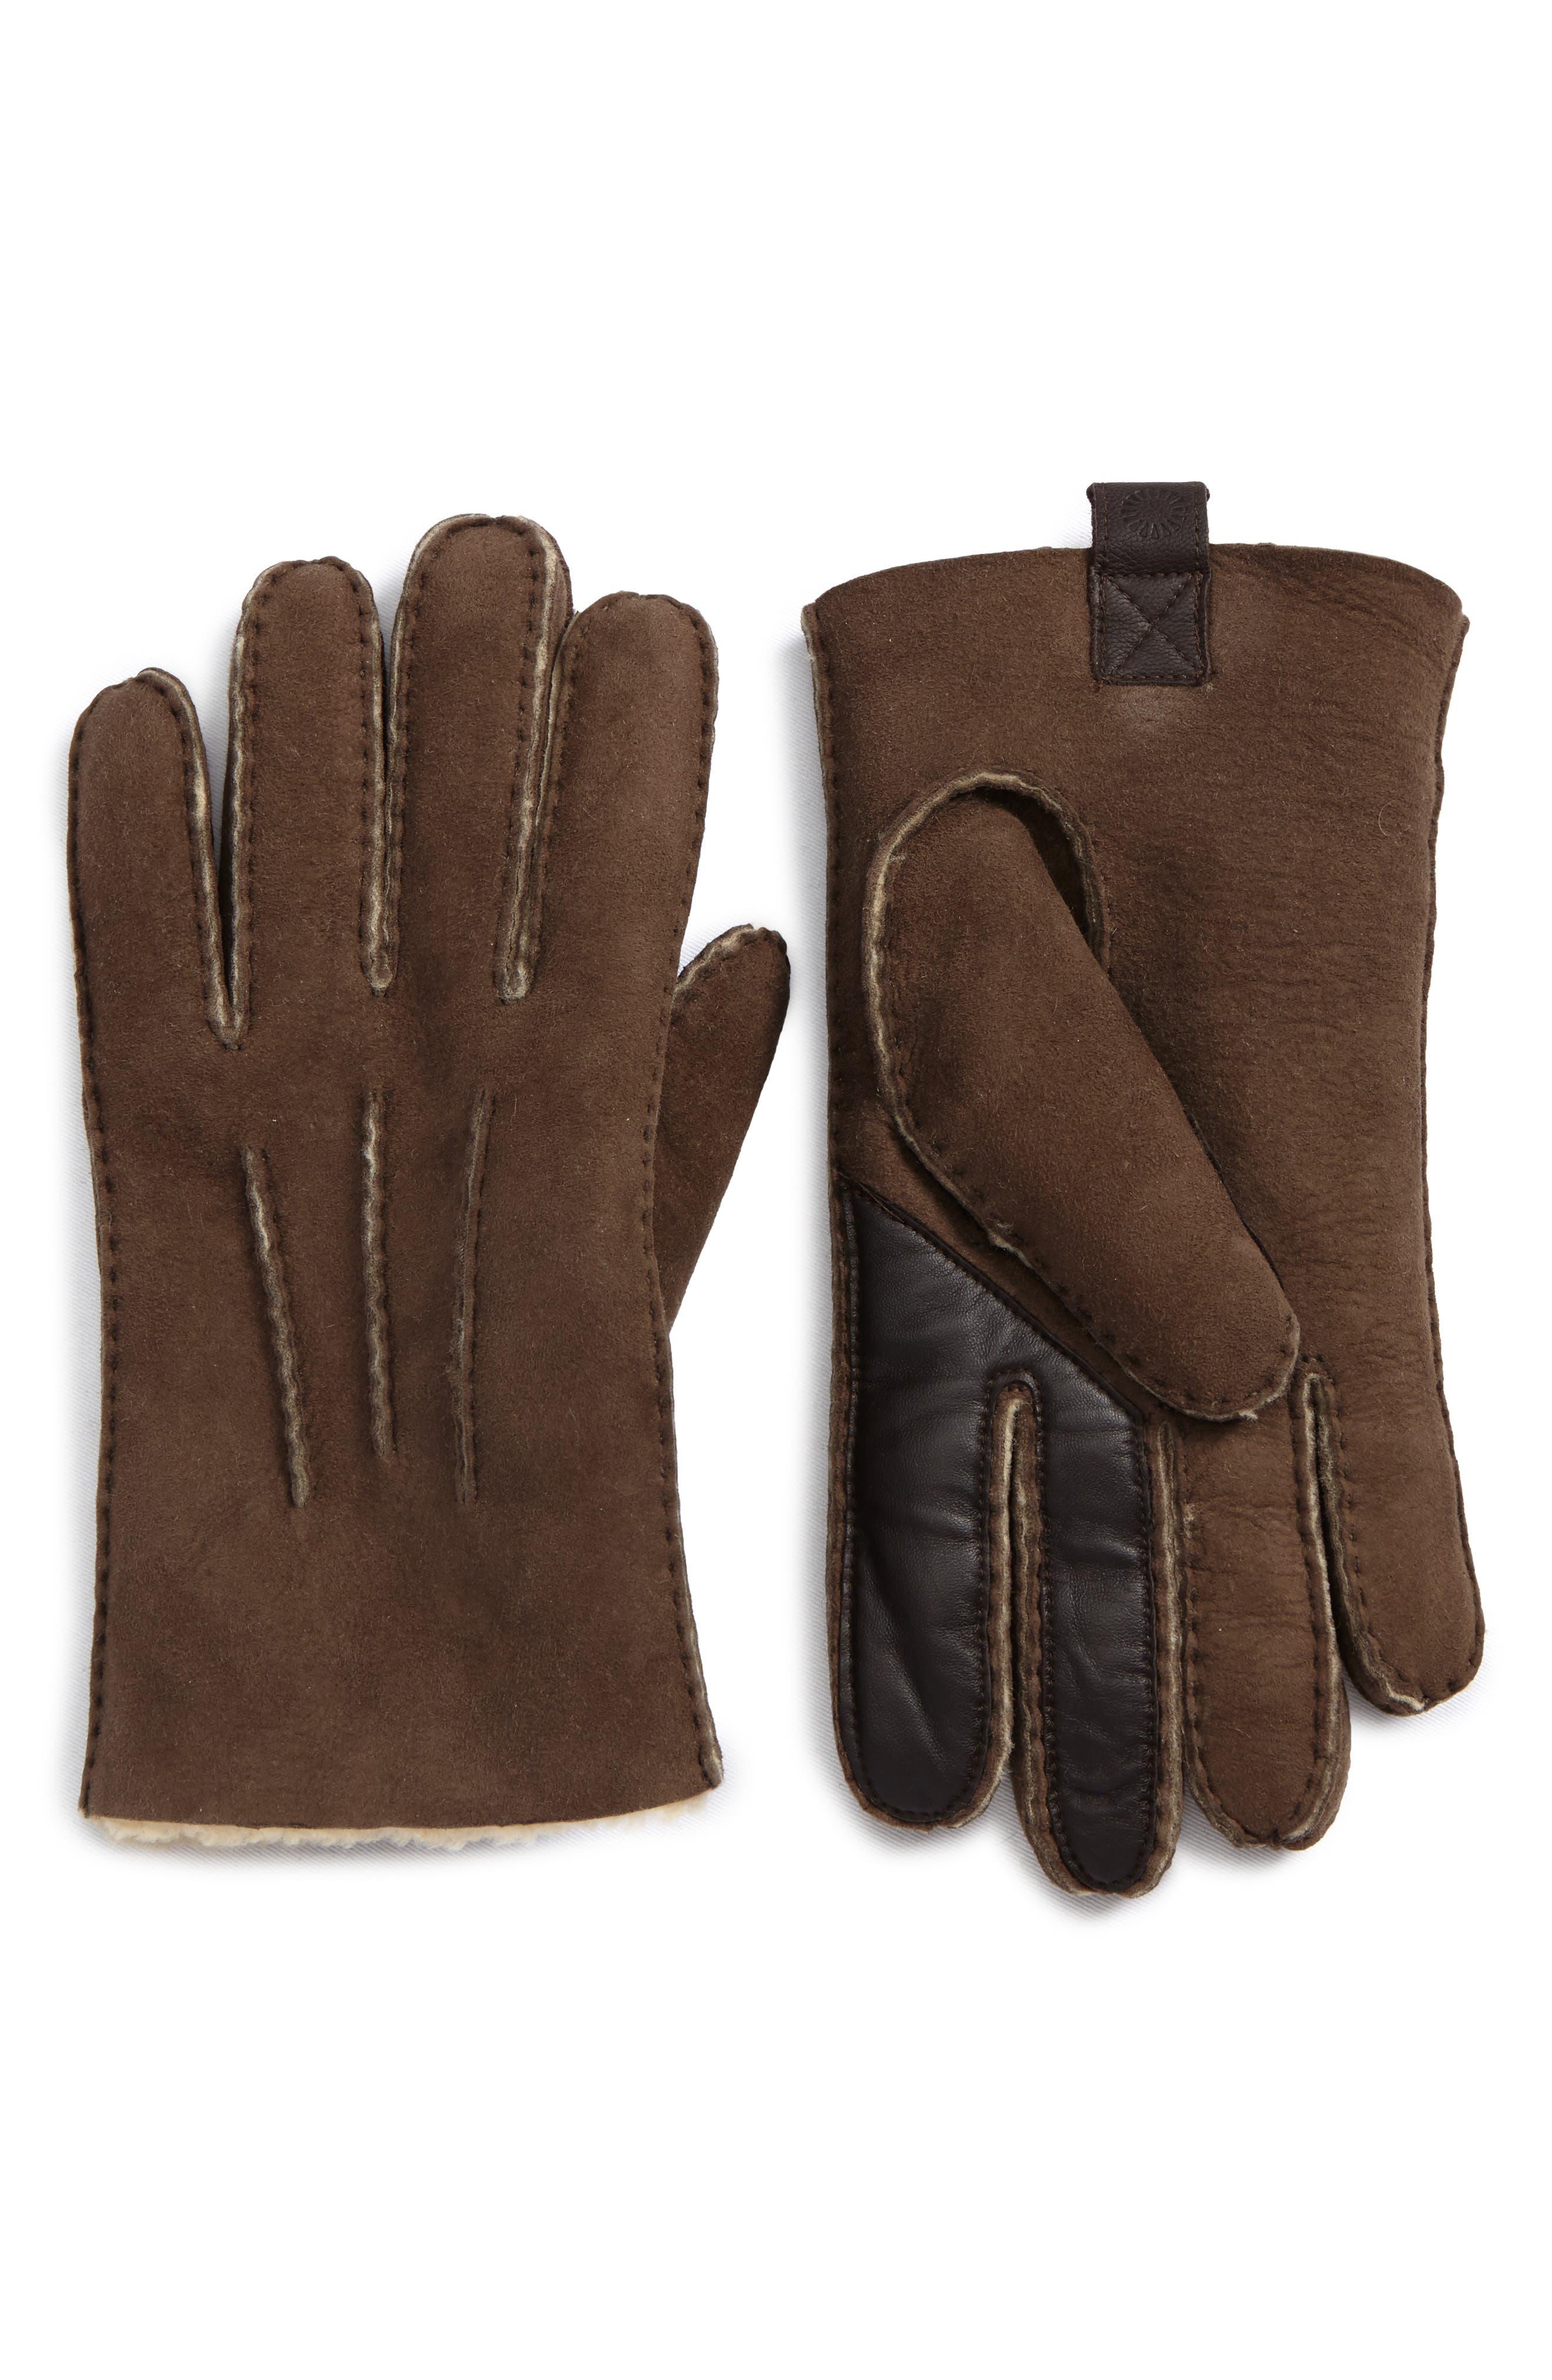 UGG Smart Sheepskin Shearling Leather Gloves,                             Main thumbnail 1, color,                             Slate Curly